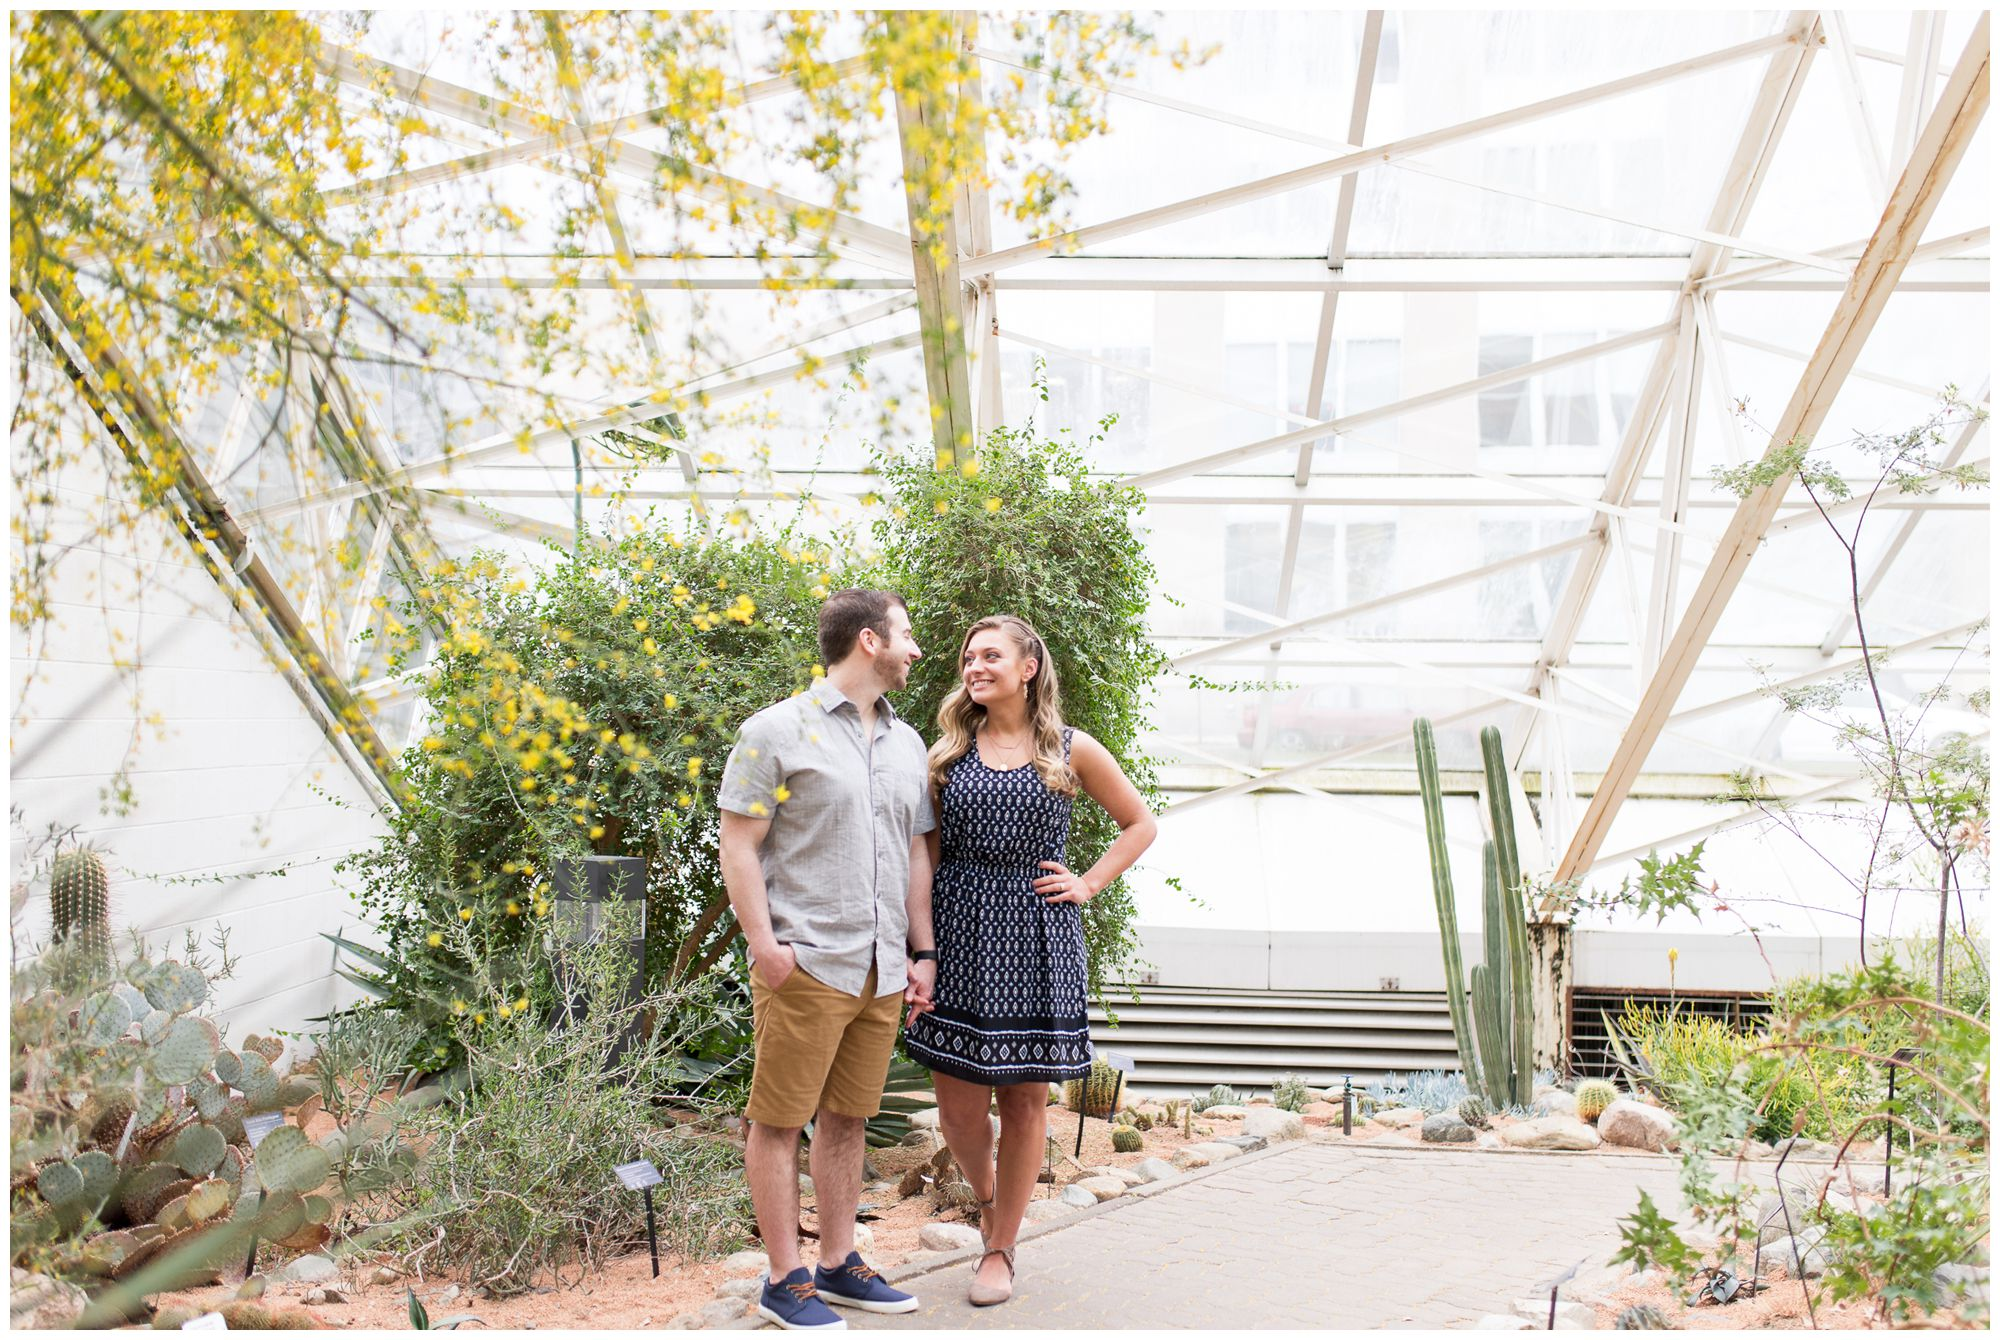 Fort Wayne engagement photography at Foellinger-Freimann Botanical Conservatory